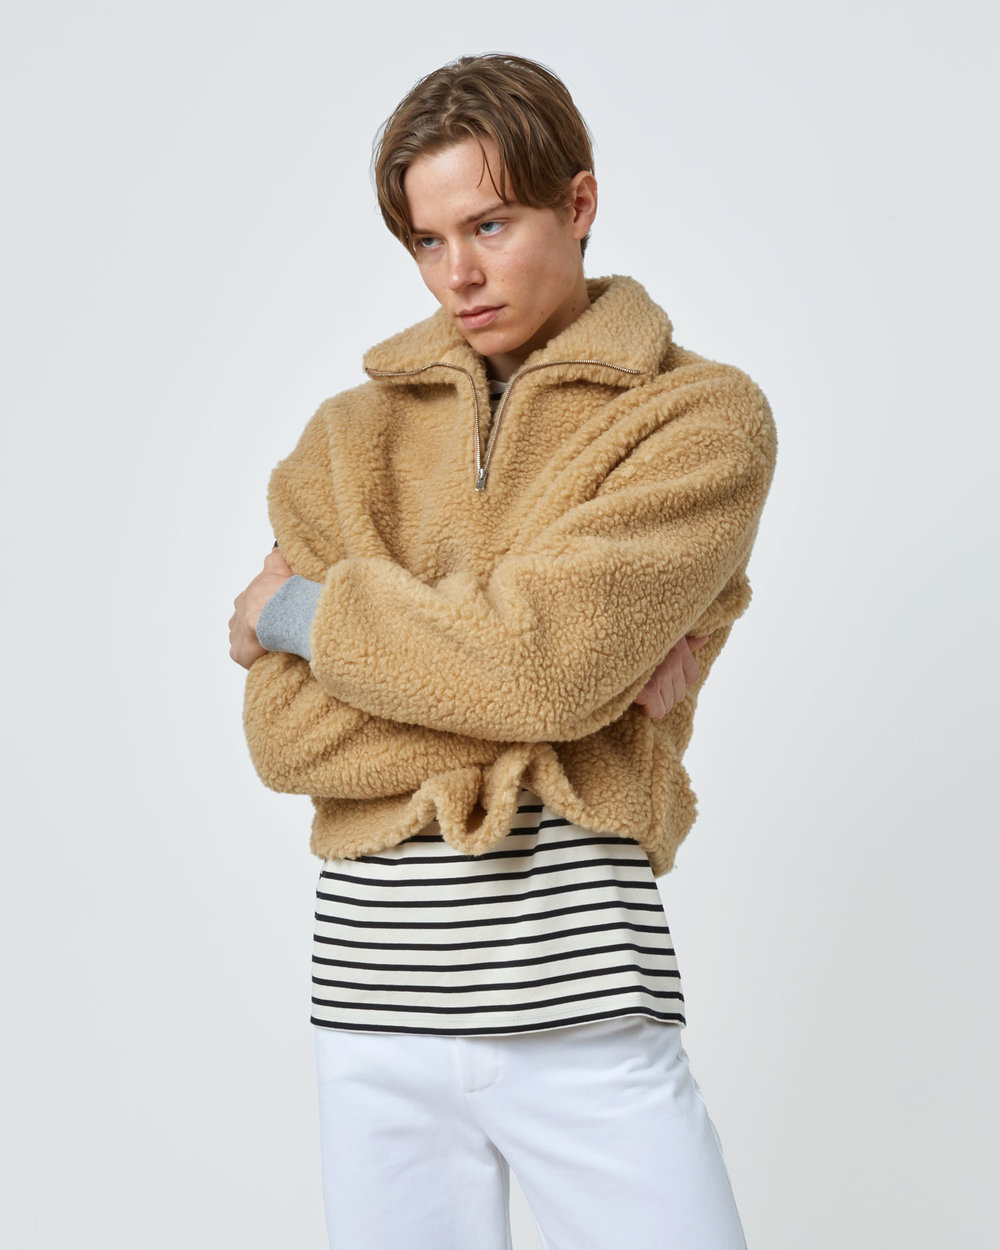 Shop Teddy Fleece Sweater in Camel with Grey Rib by One DNA